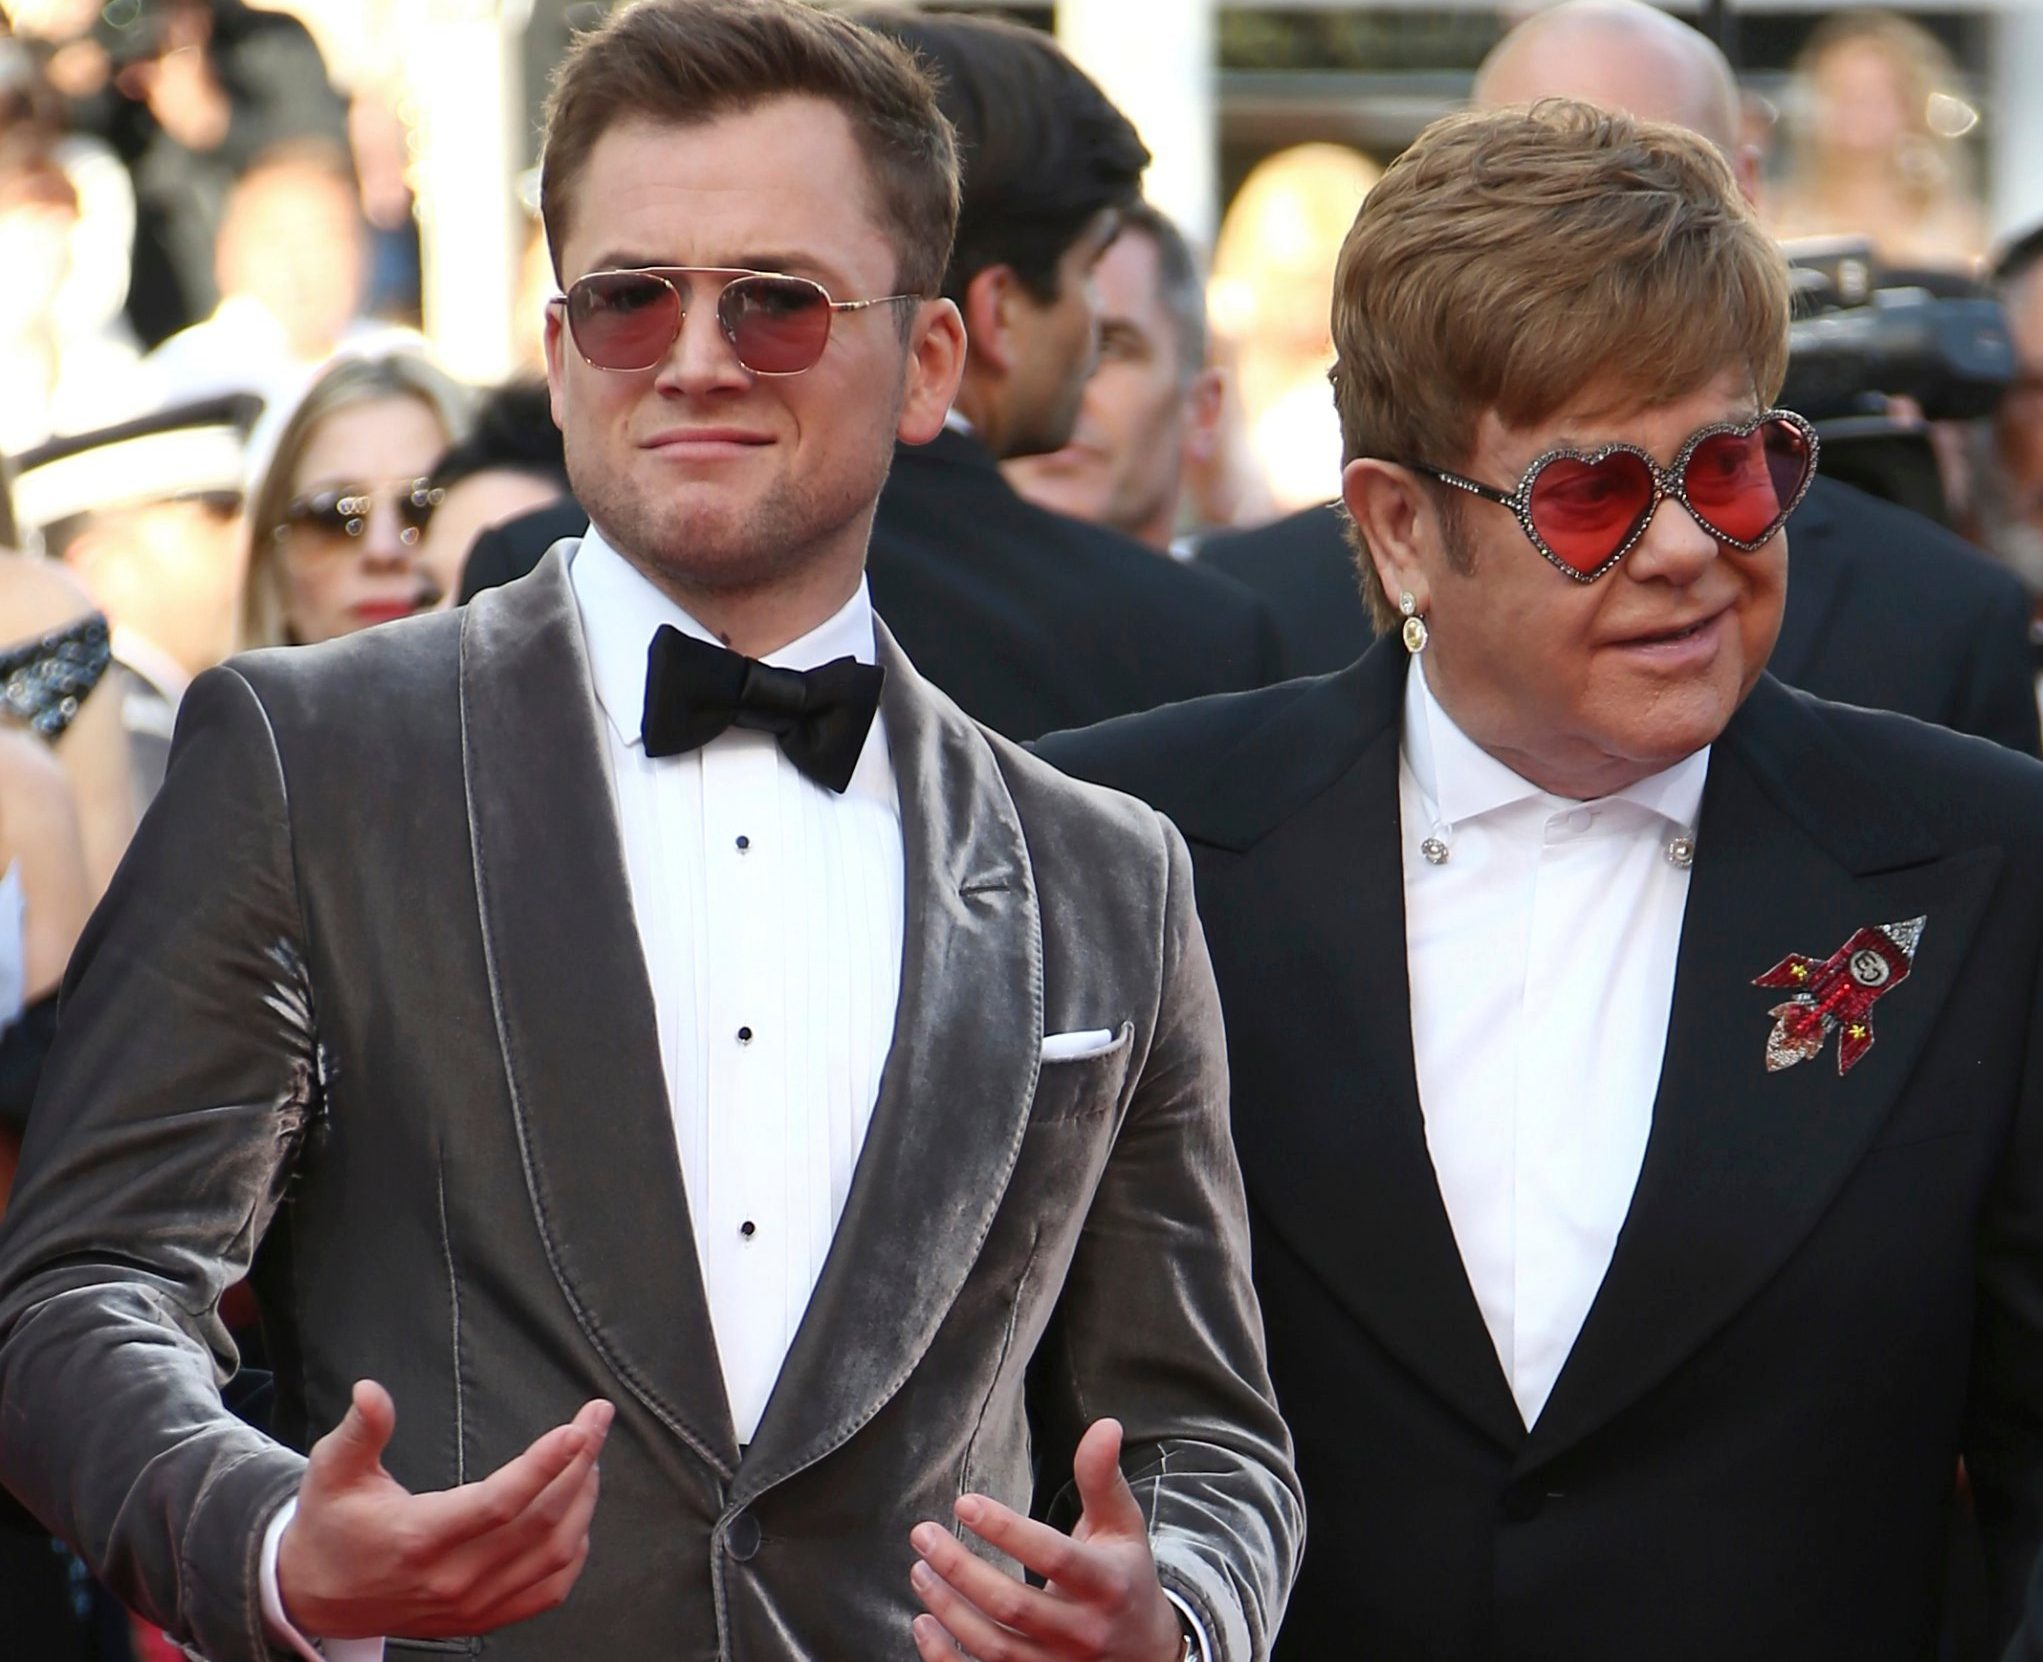 Taron Egerton and Elton John poise during a premiere of a film 'Rocketman' during Cannes